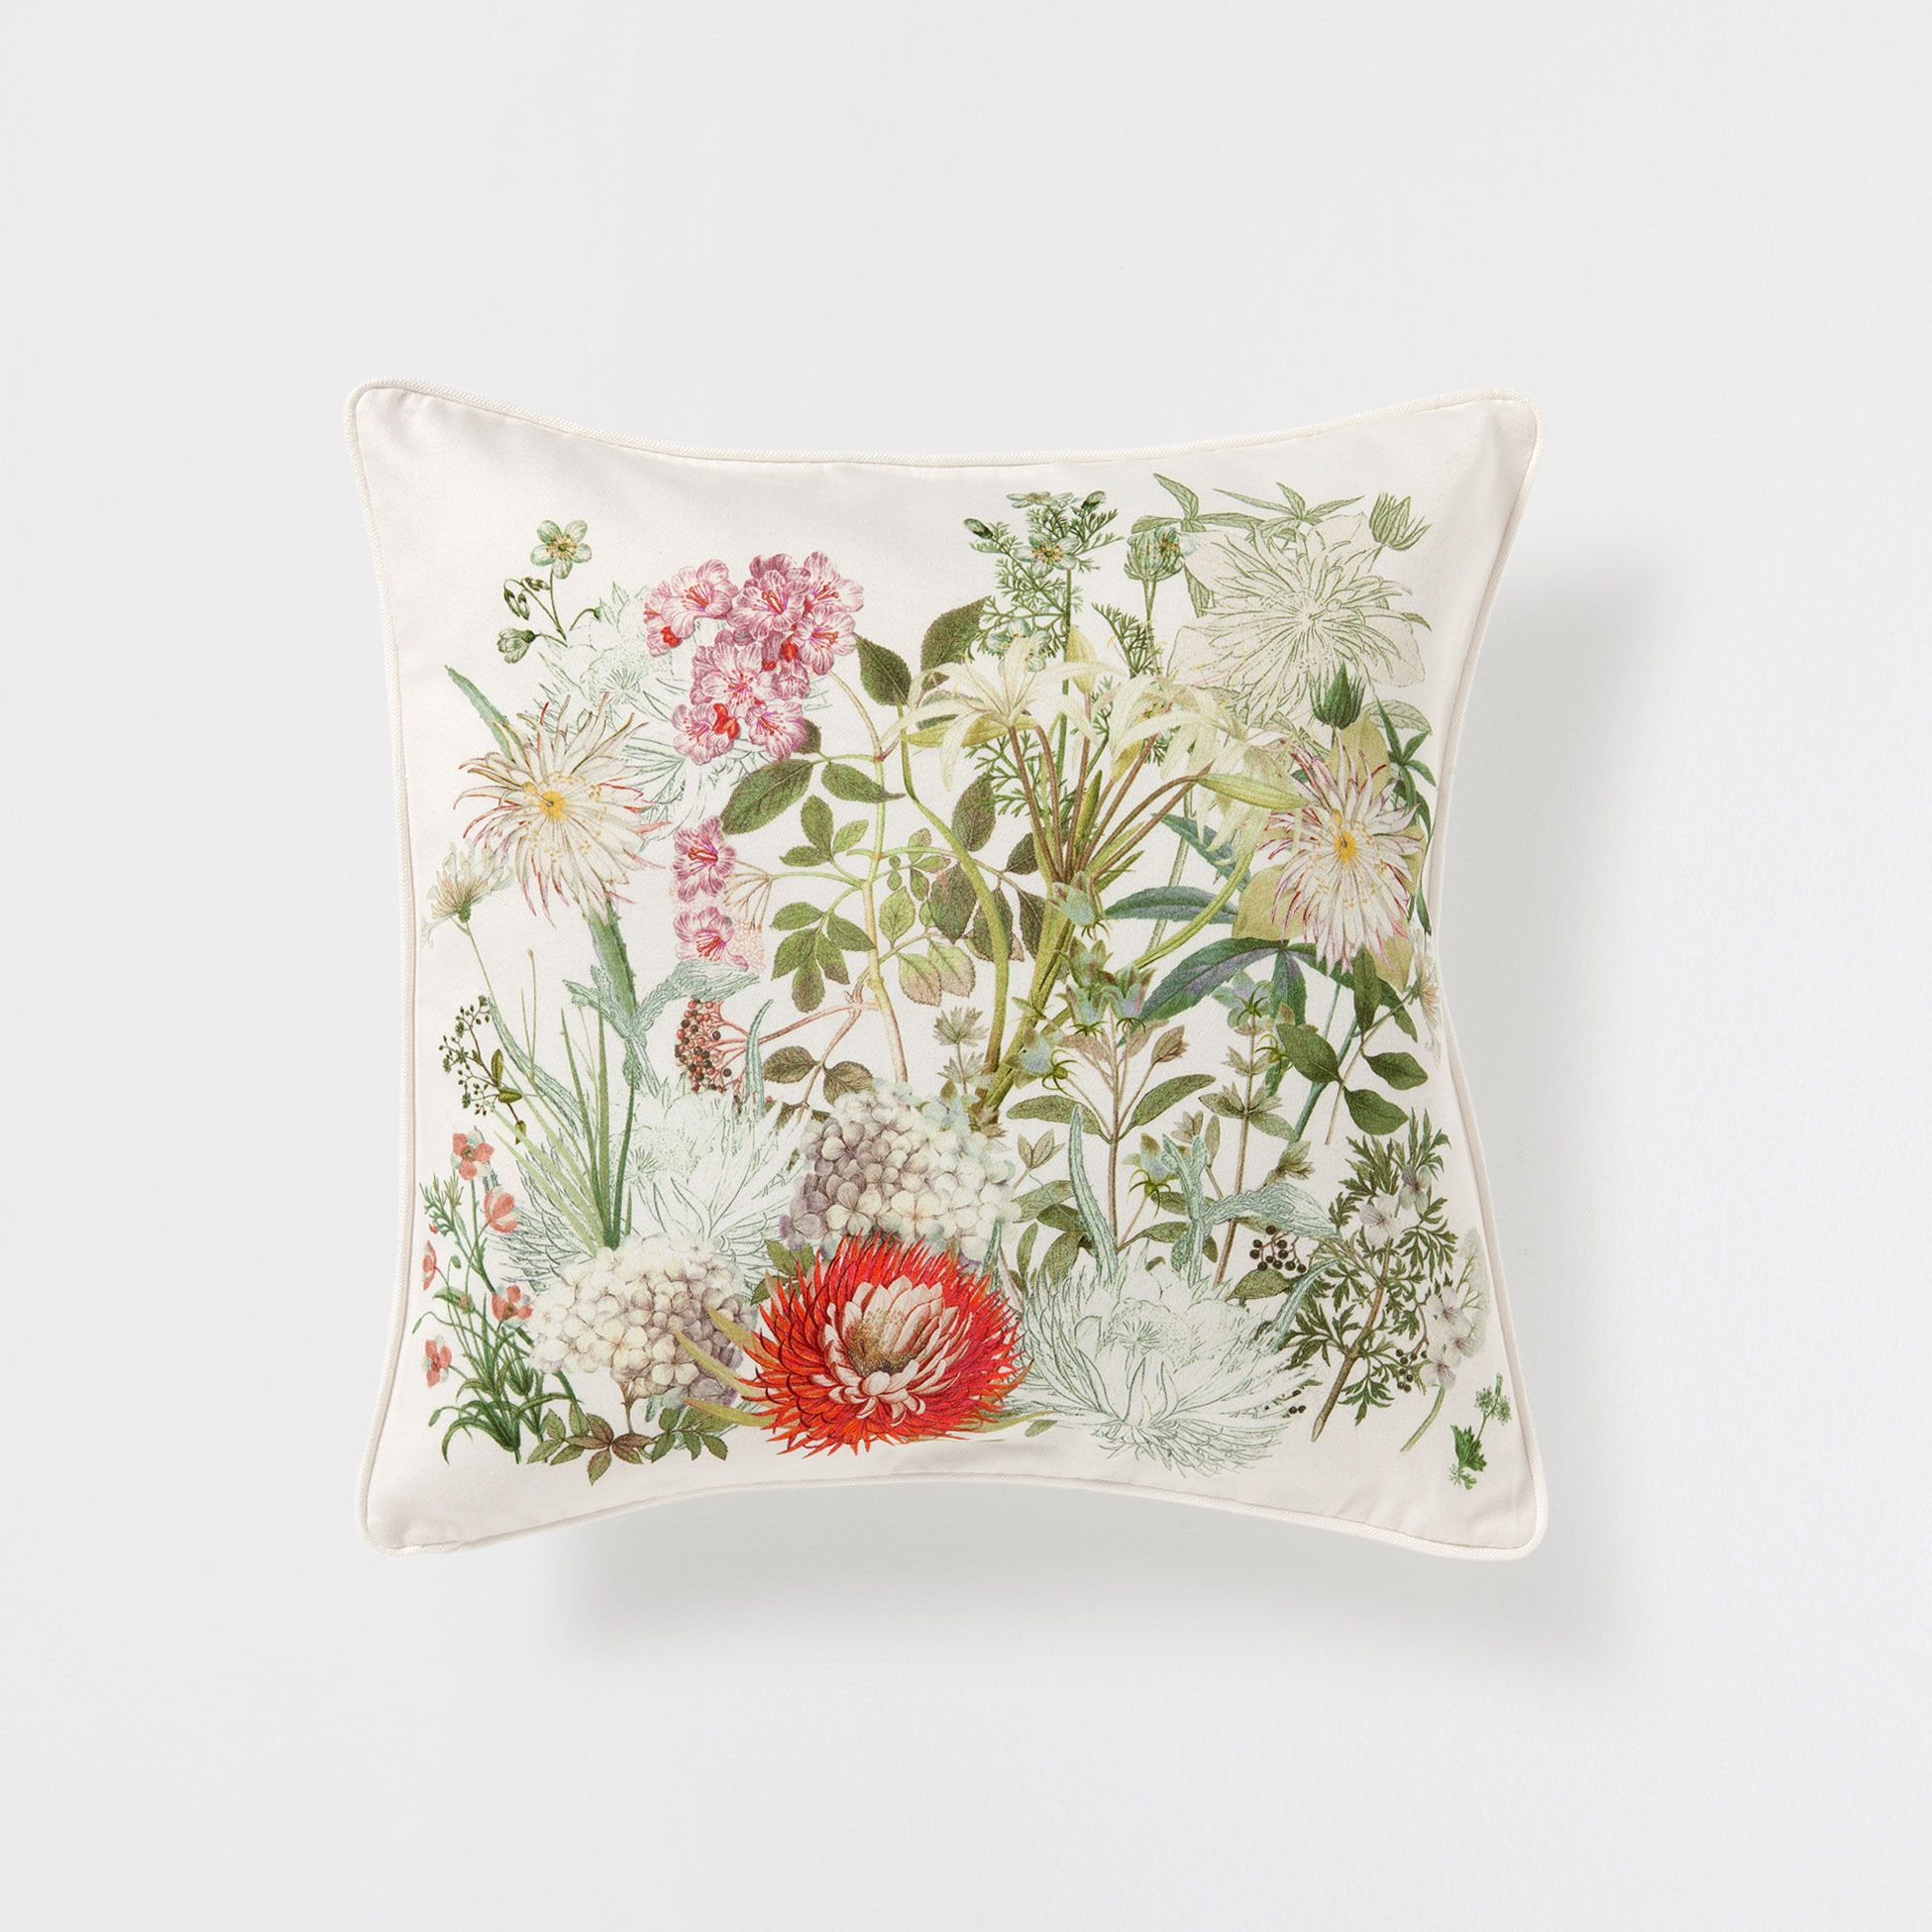 Cuscino Stampa A Fiori Maybe Pinterest Bedroom Cushions And